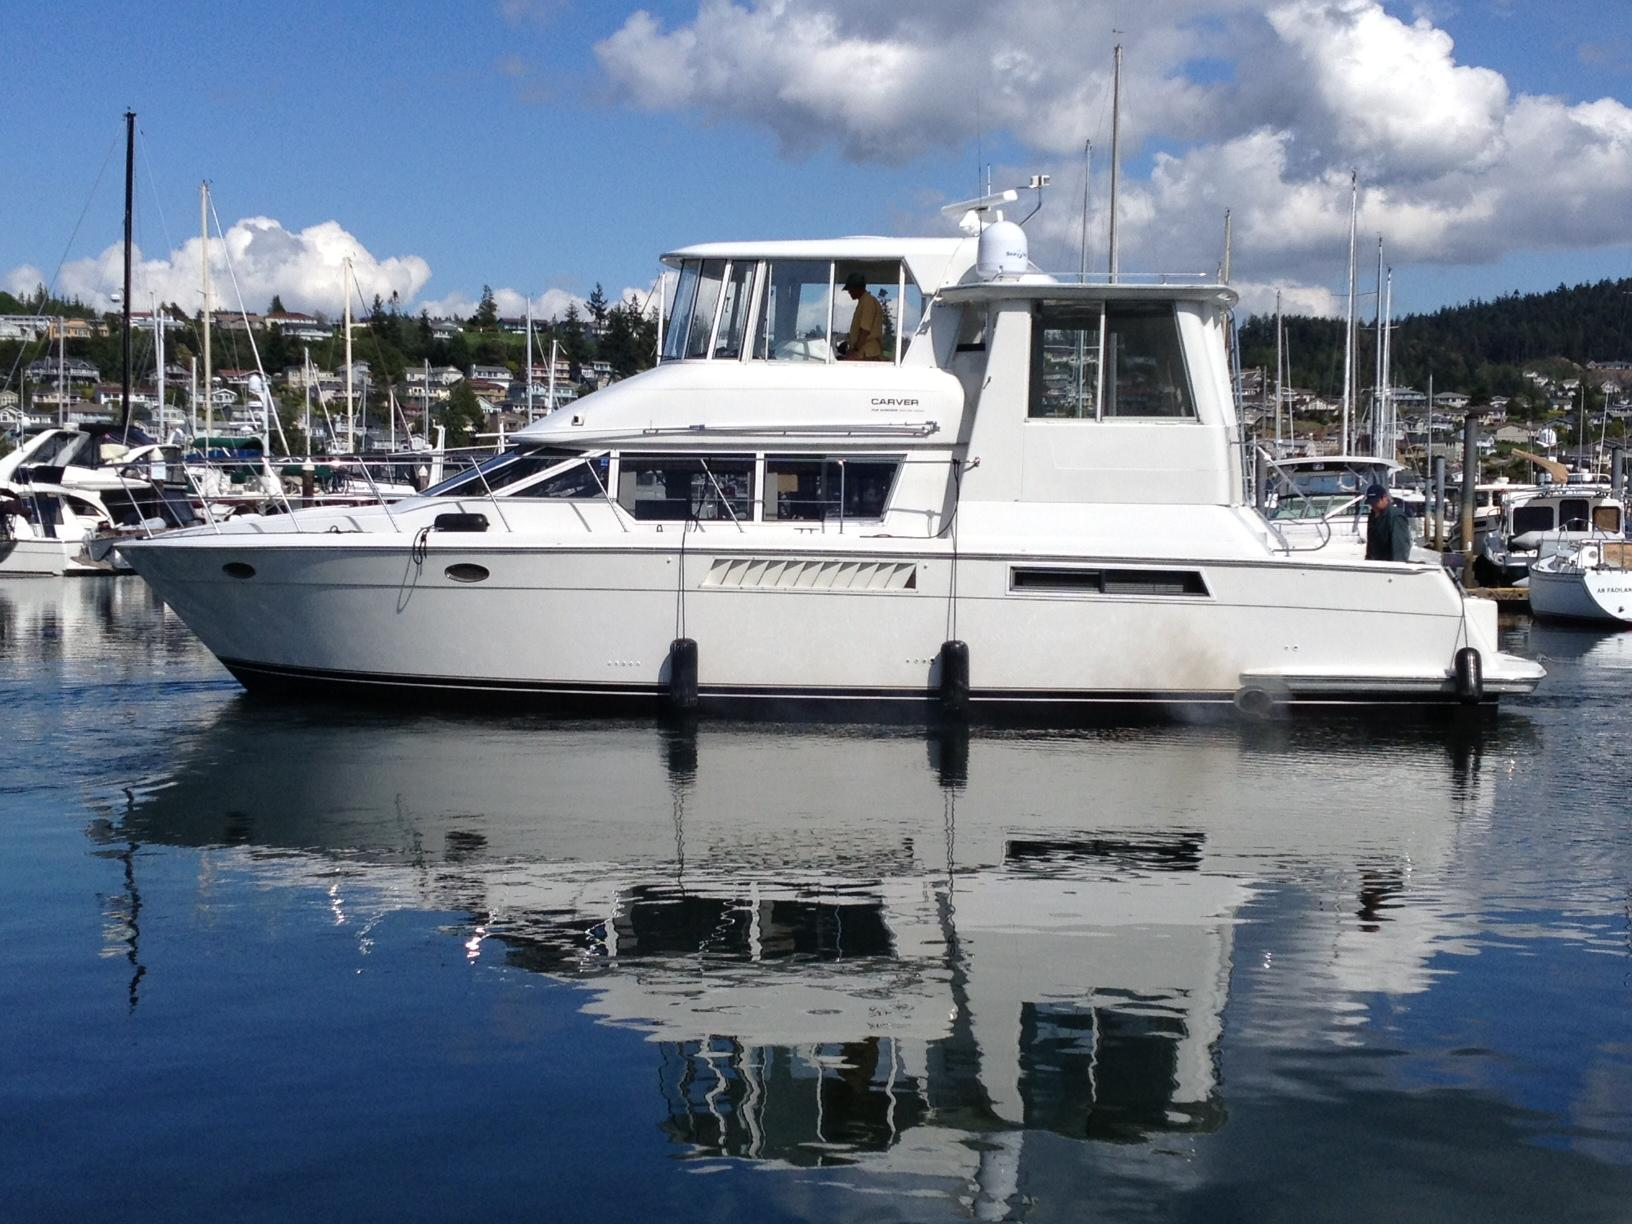 Royal marine yacht sales 1998 carver 50 motor yacht for sale for 50 ft motor yachts for sale